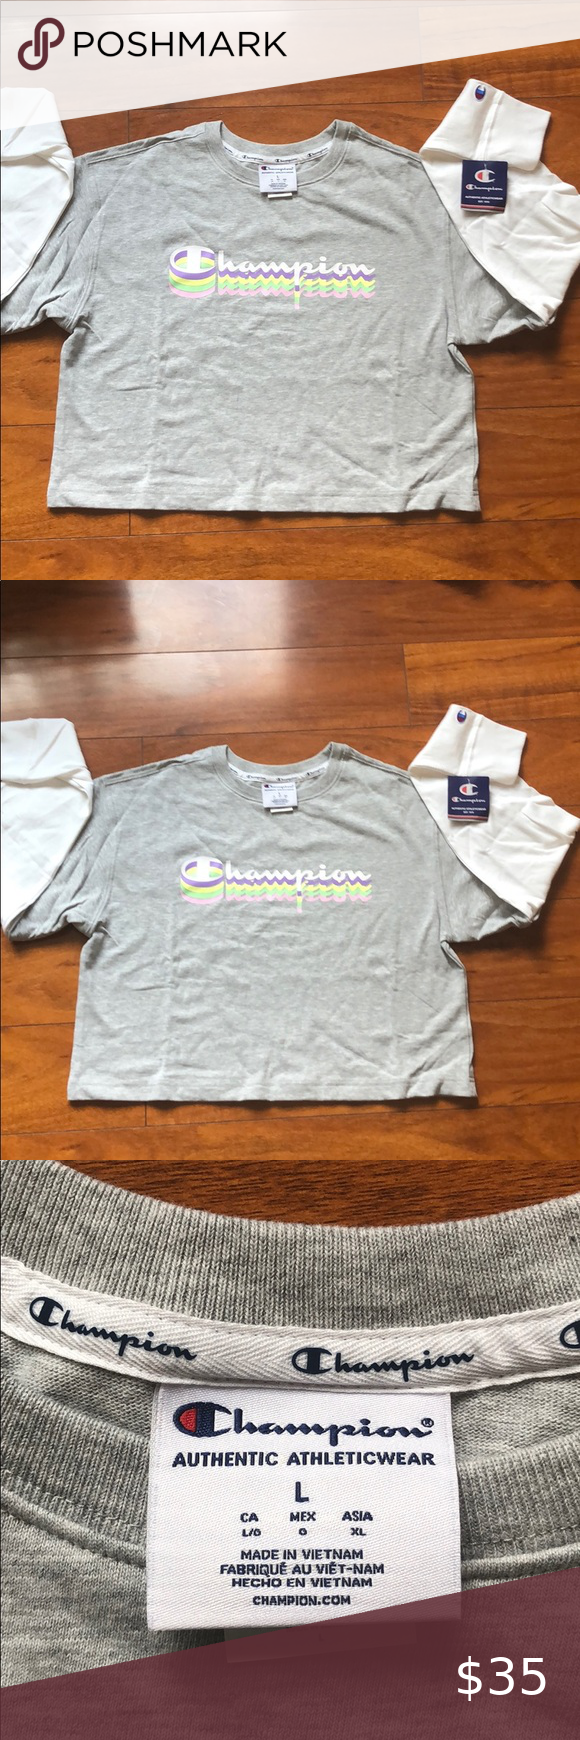 Nwt Champion Authentic Athletic Wear Large Athletic Wear How To Wear Sweatshirt Tops [ 1740 x 580 Pixel ]